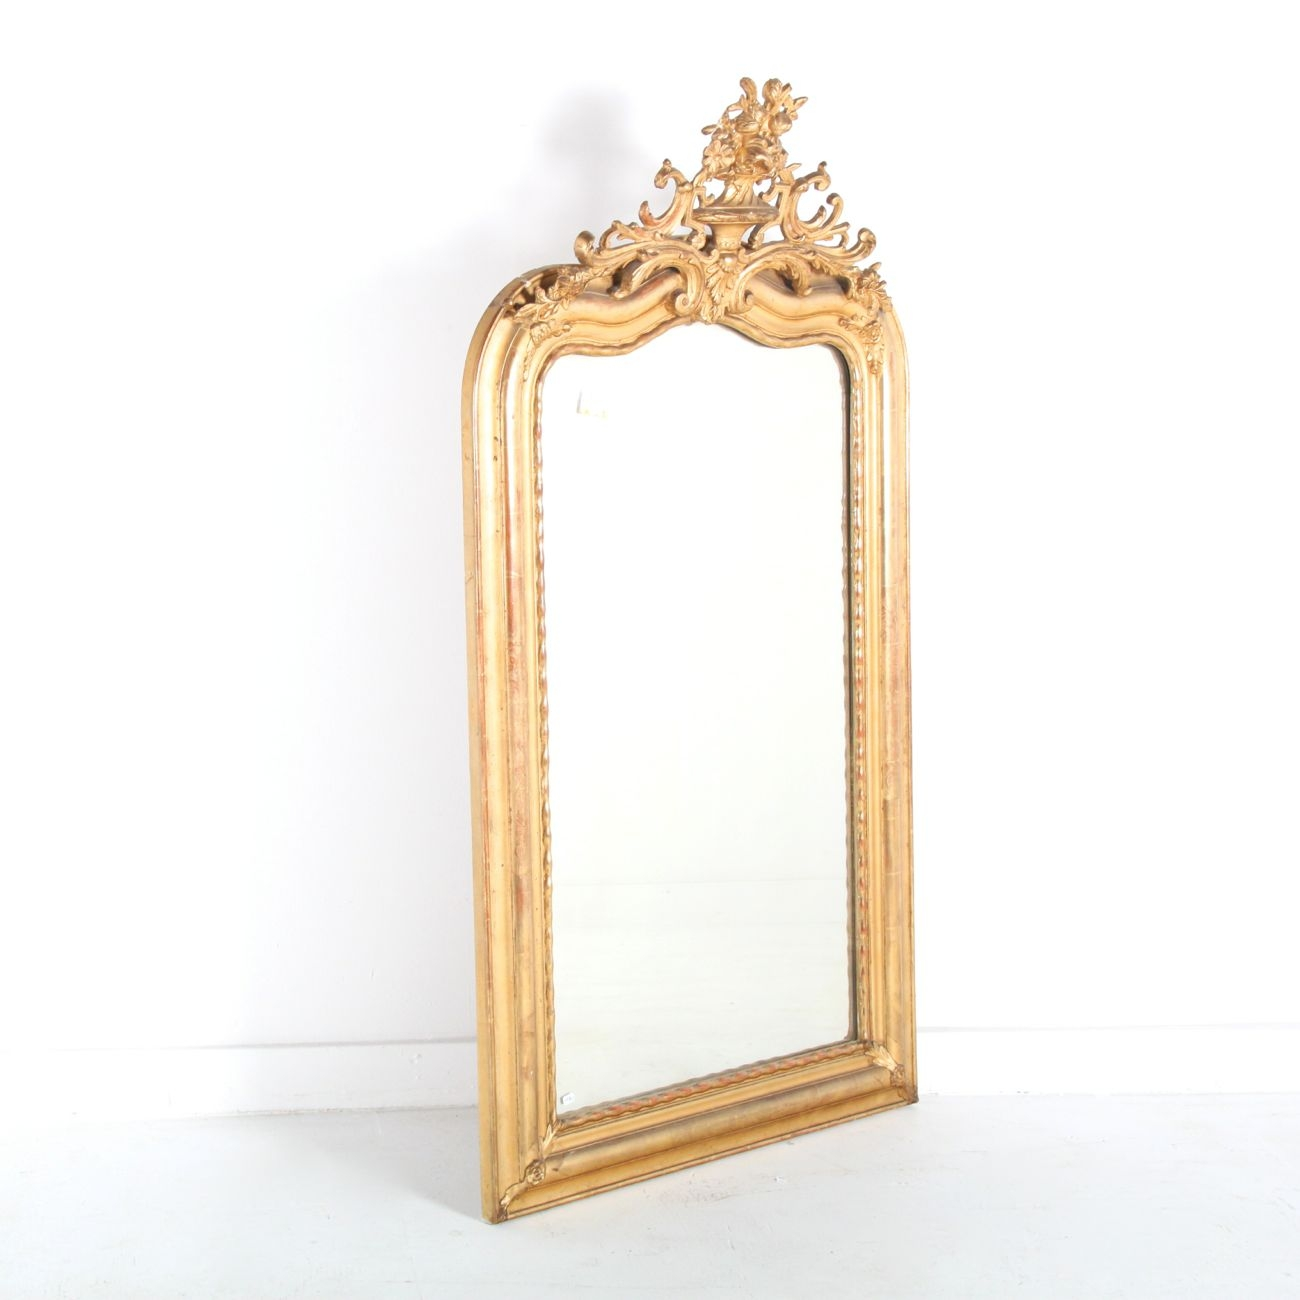 French Antique Gold Mirror Vancouver Antiques Vintage Inside Antique Gold Mirror French (View 12 of 15)